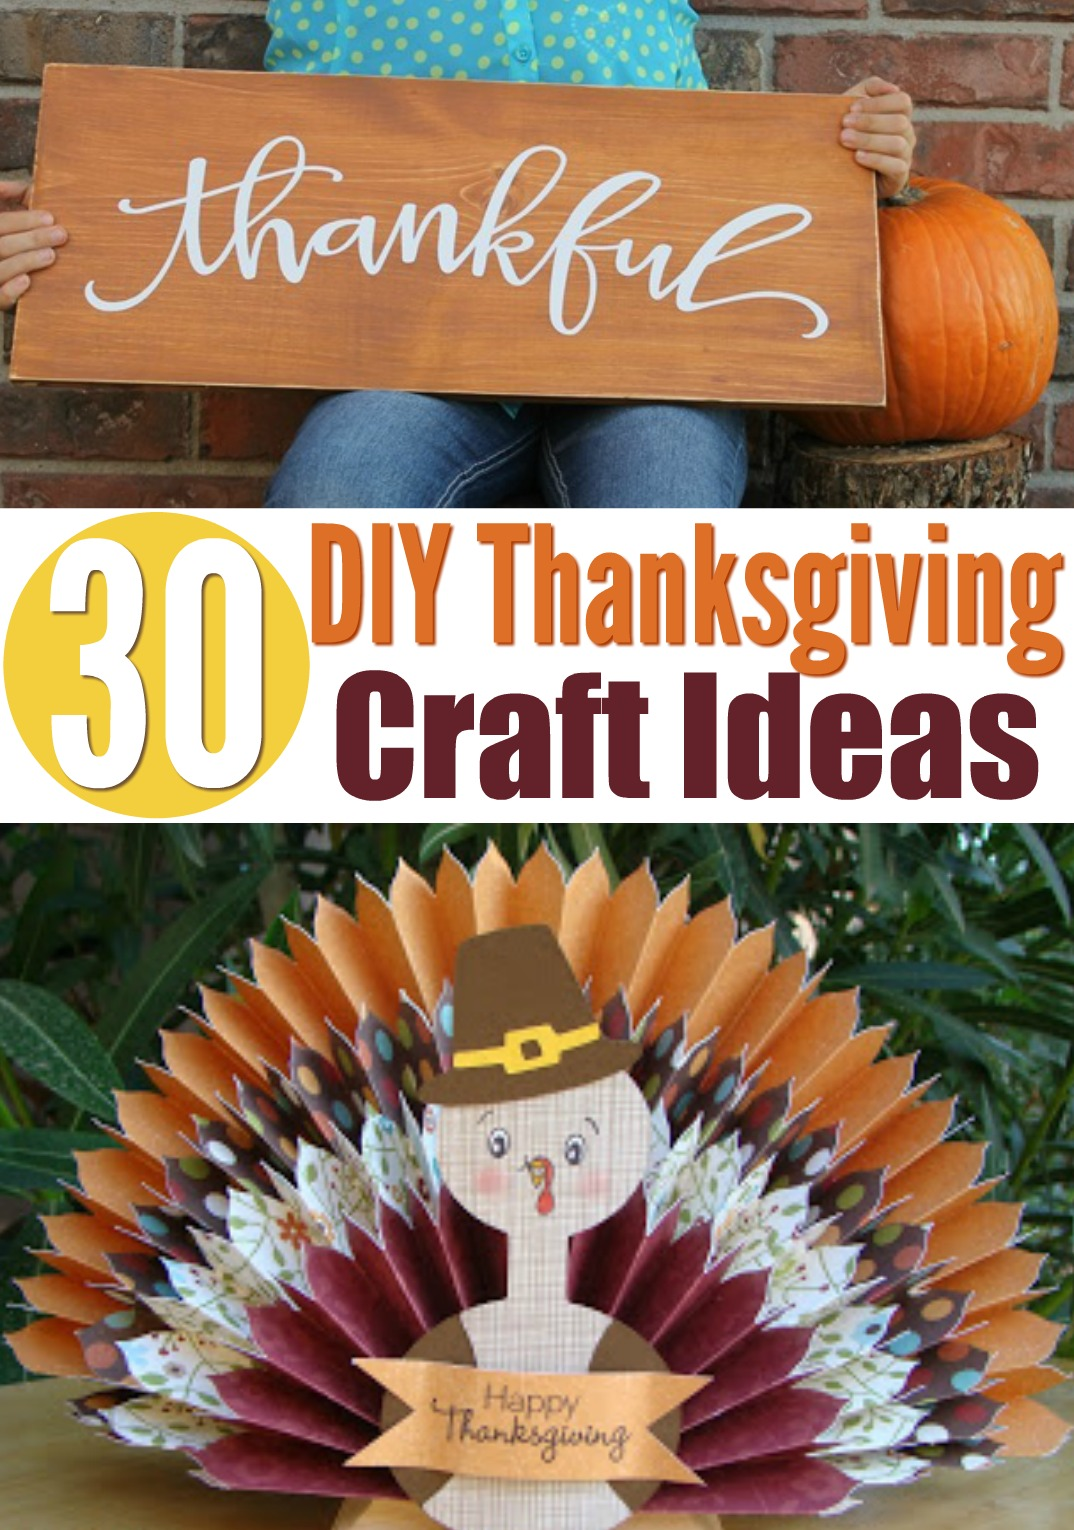 30 DIY Thanksgiving Craft Ideas - A Little Craft In Your Day